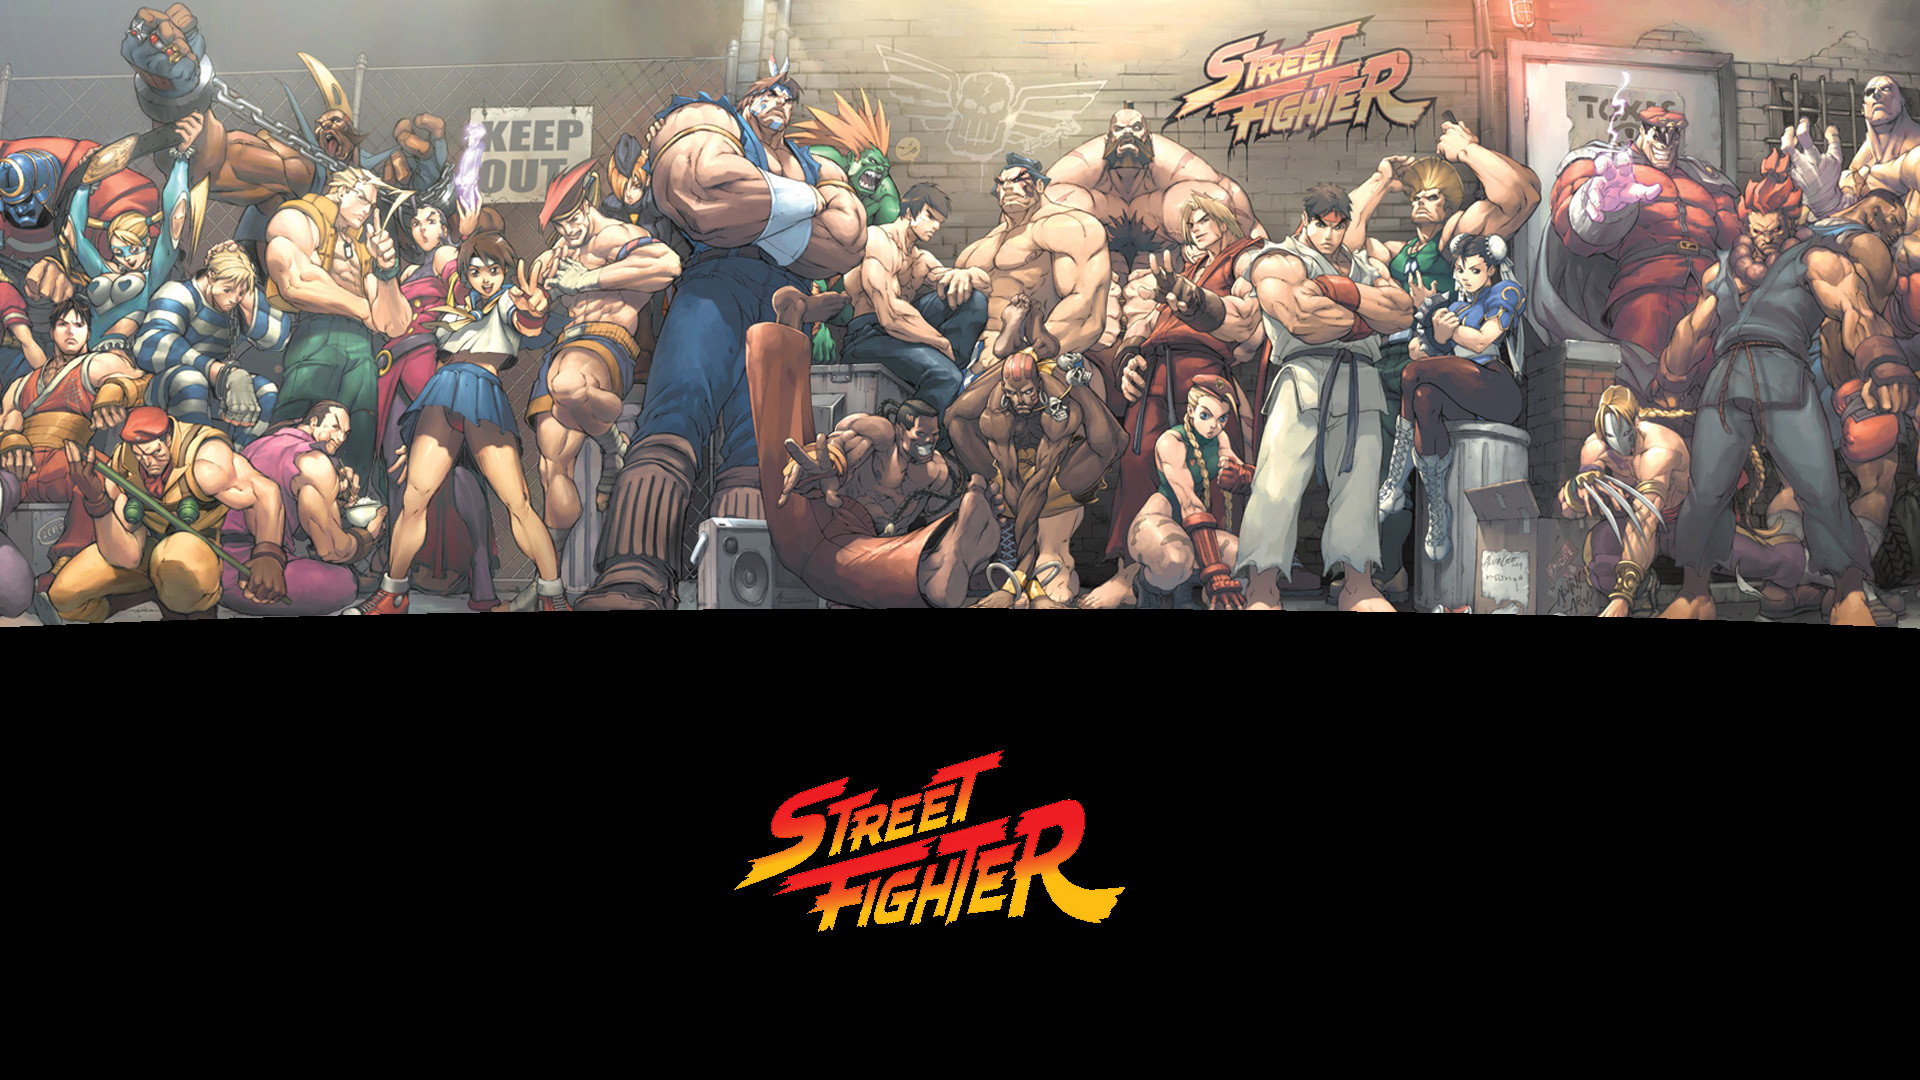 1920x1080 388 Street Fighter HD Wallpapers | Backgrounds - Wallpaper Abyss